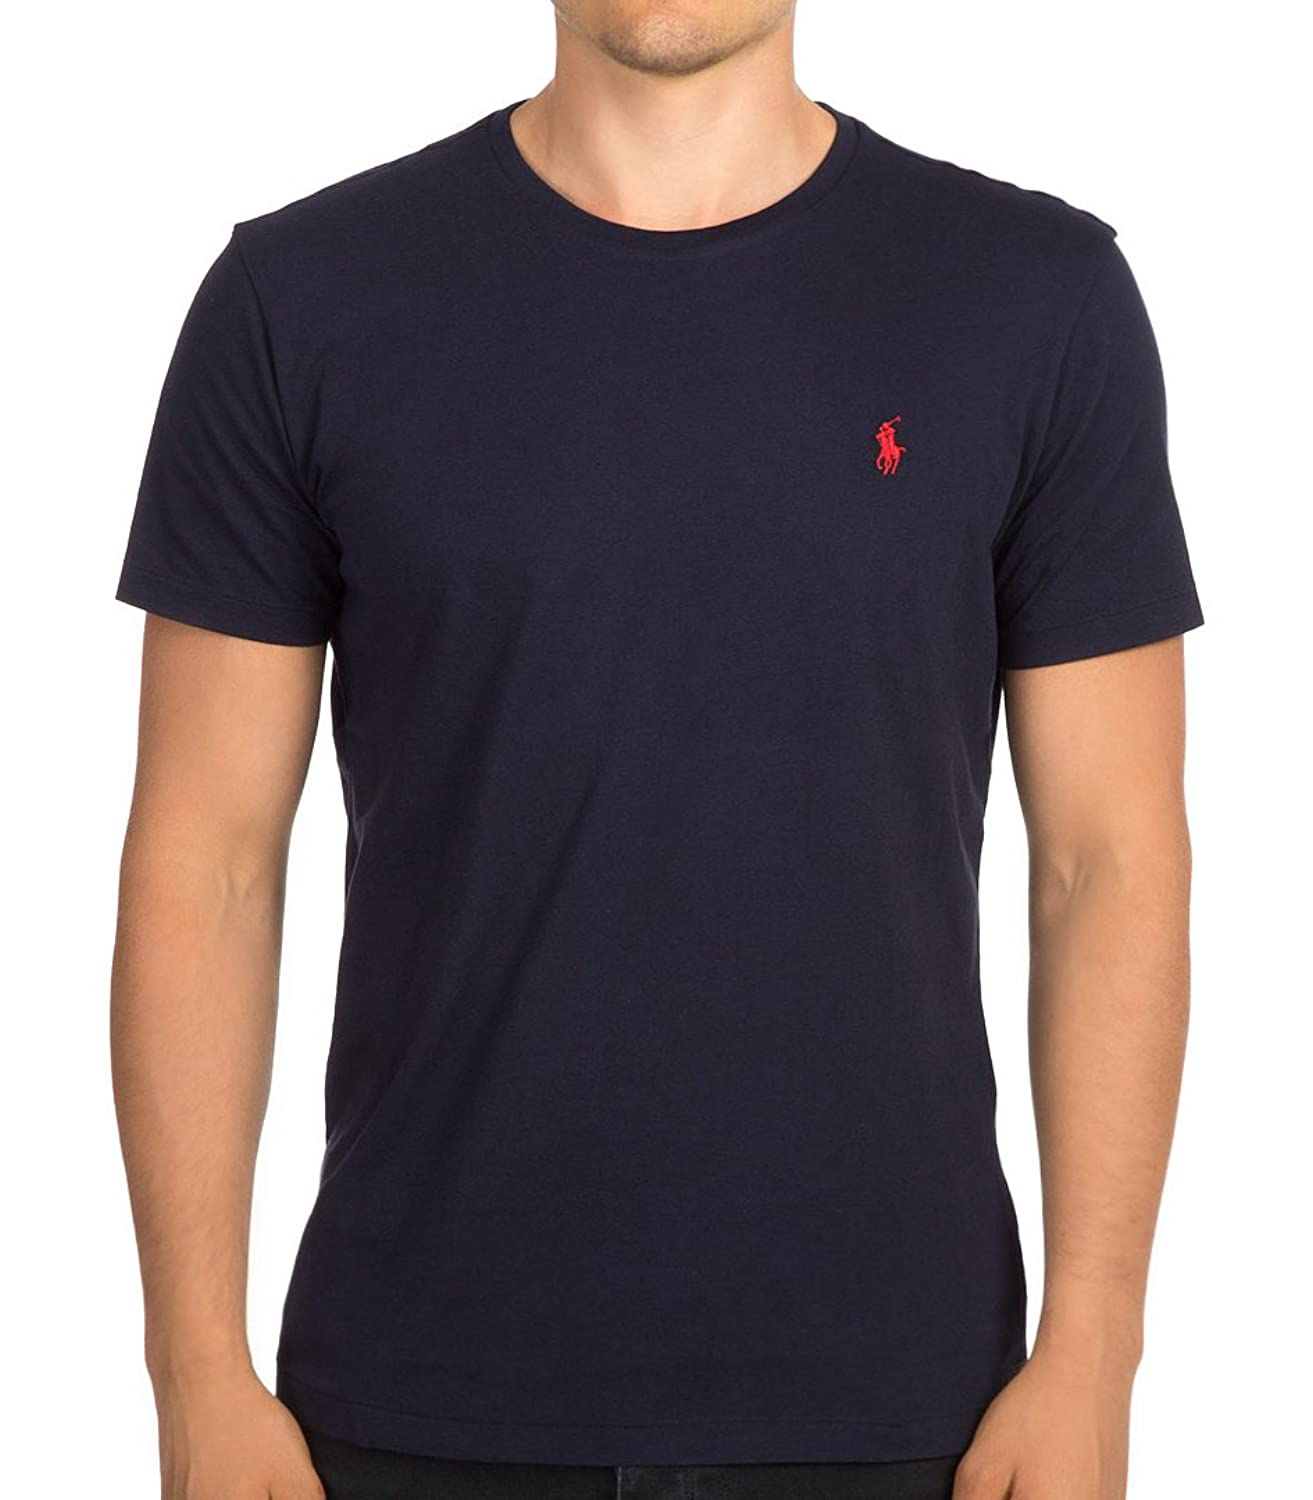 Polo Ralph Lauren Men\u0027s Classic Fit Crew Neck Pony Logo T-Shirt, Ink, L |  Amazon.com